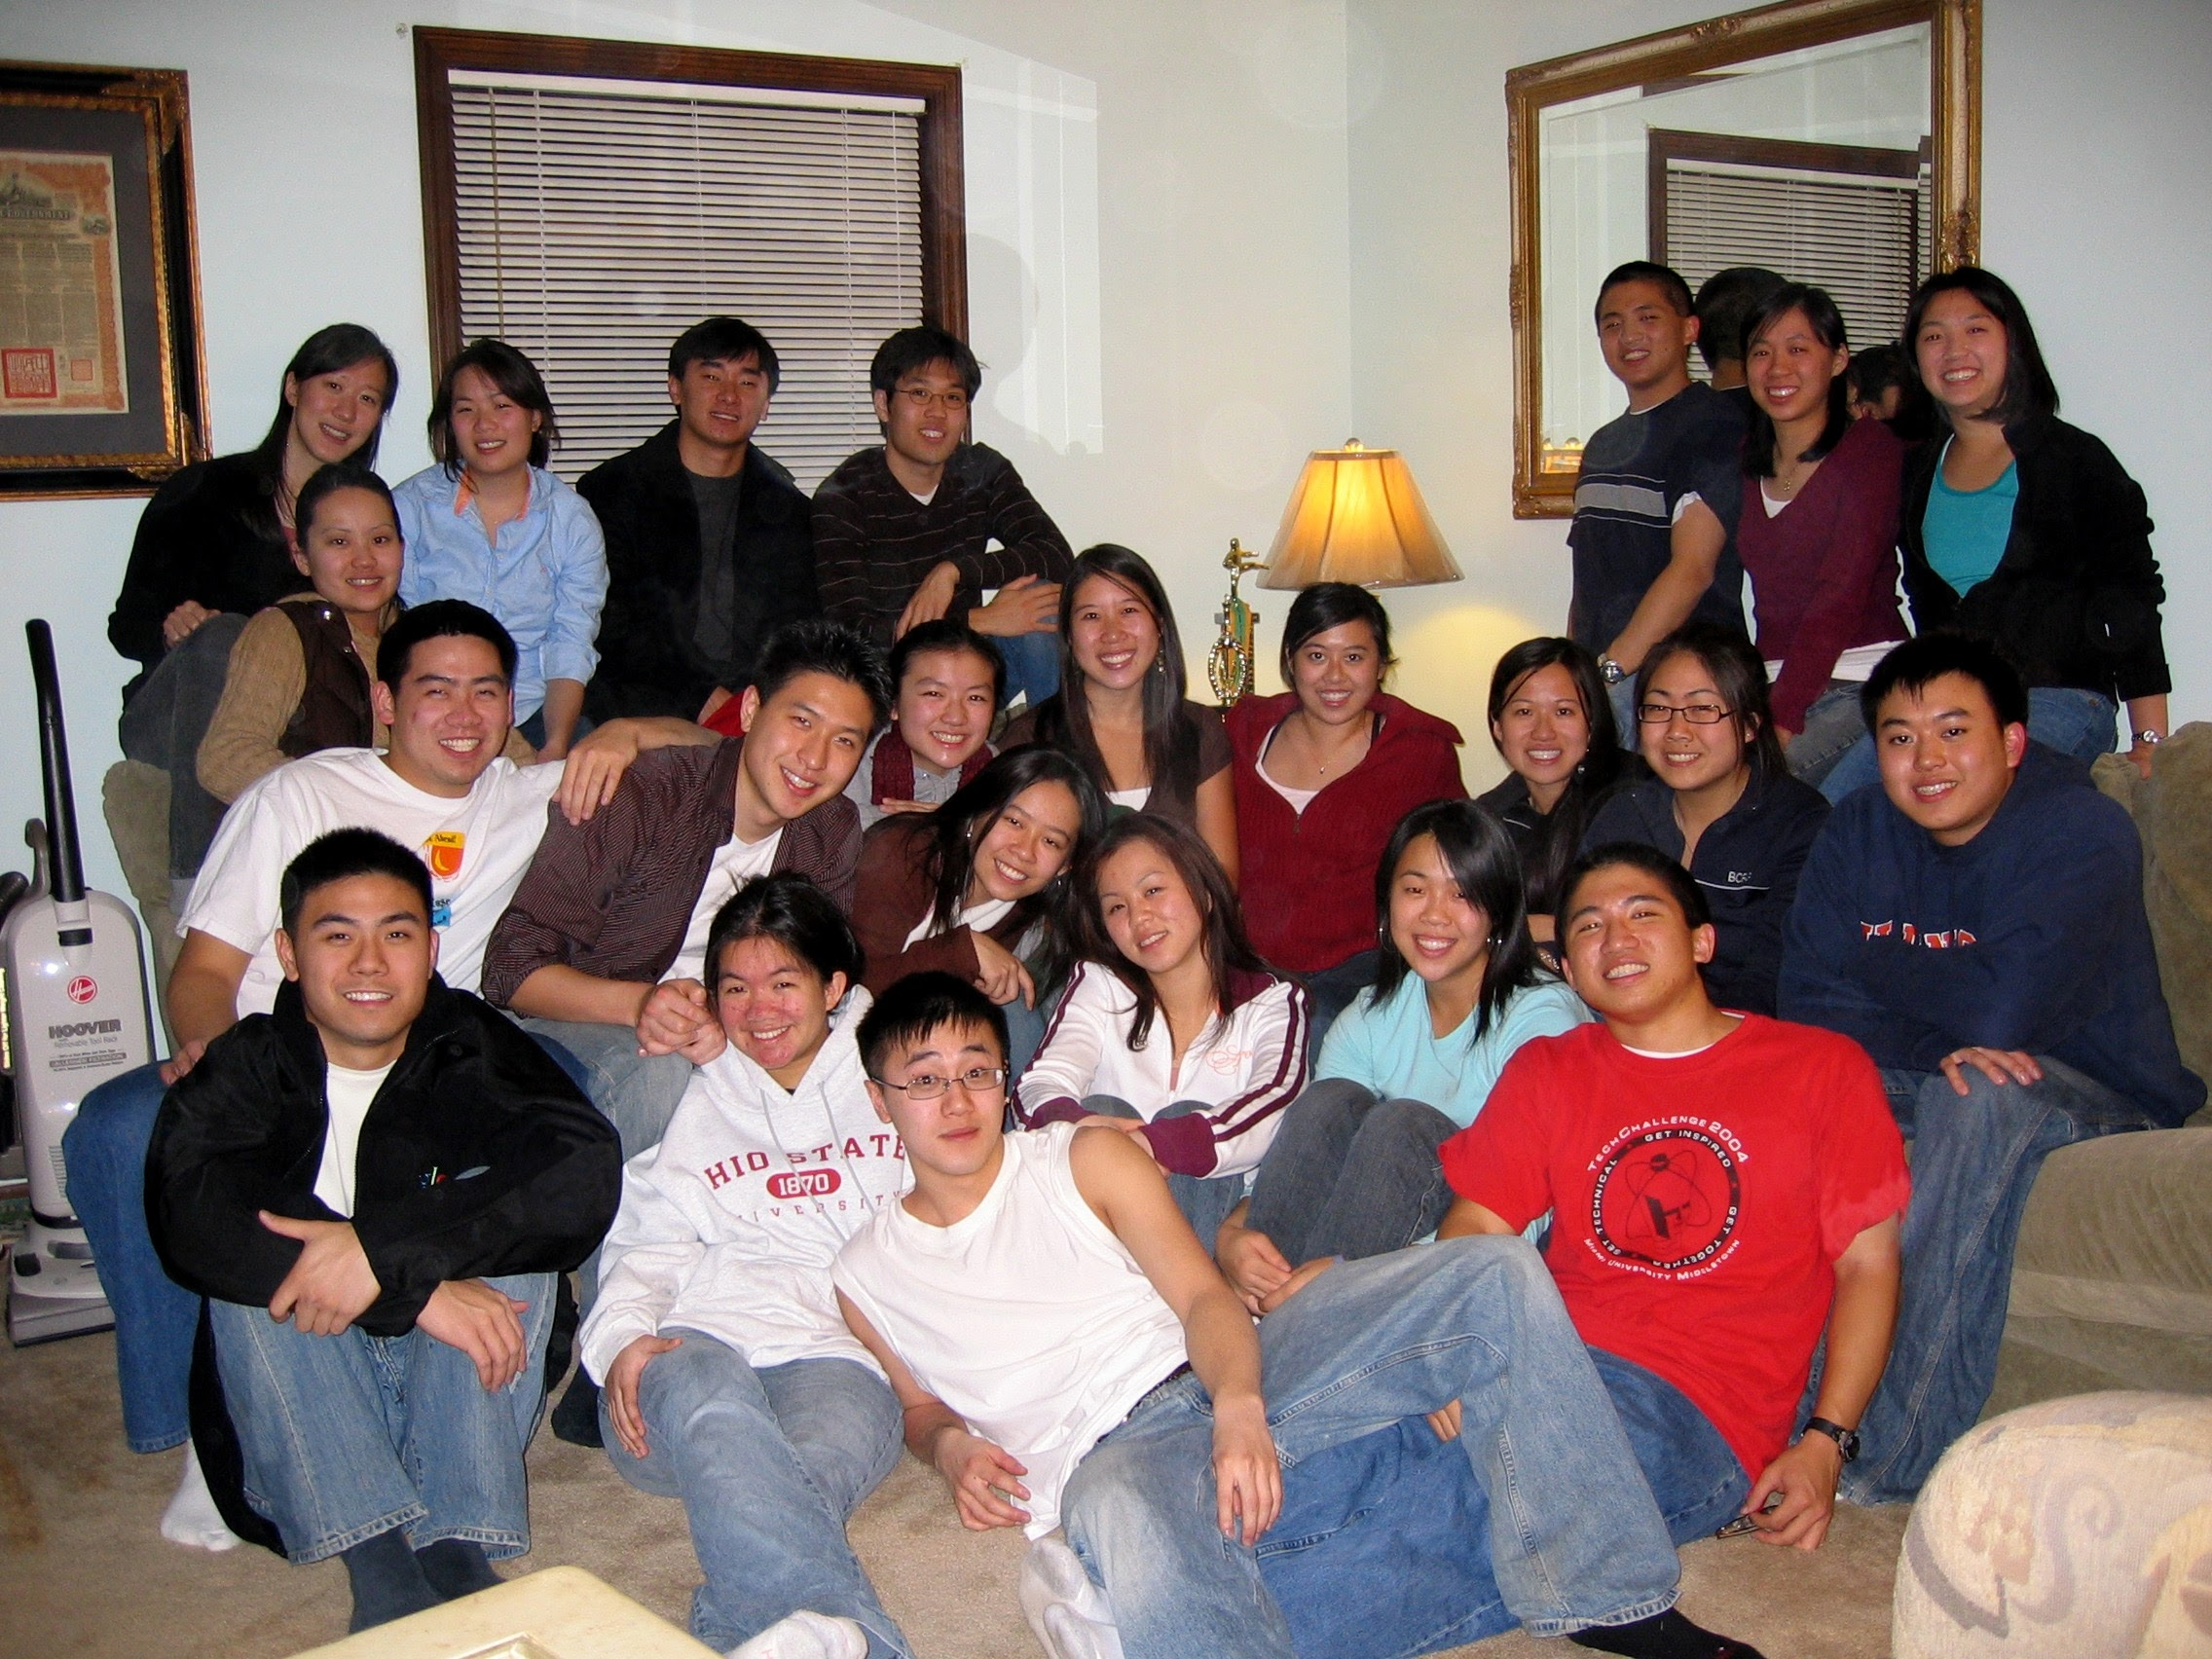 As we got older, we often gathered NOT in the basement.